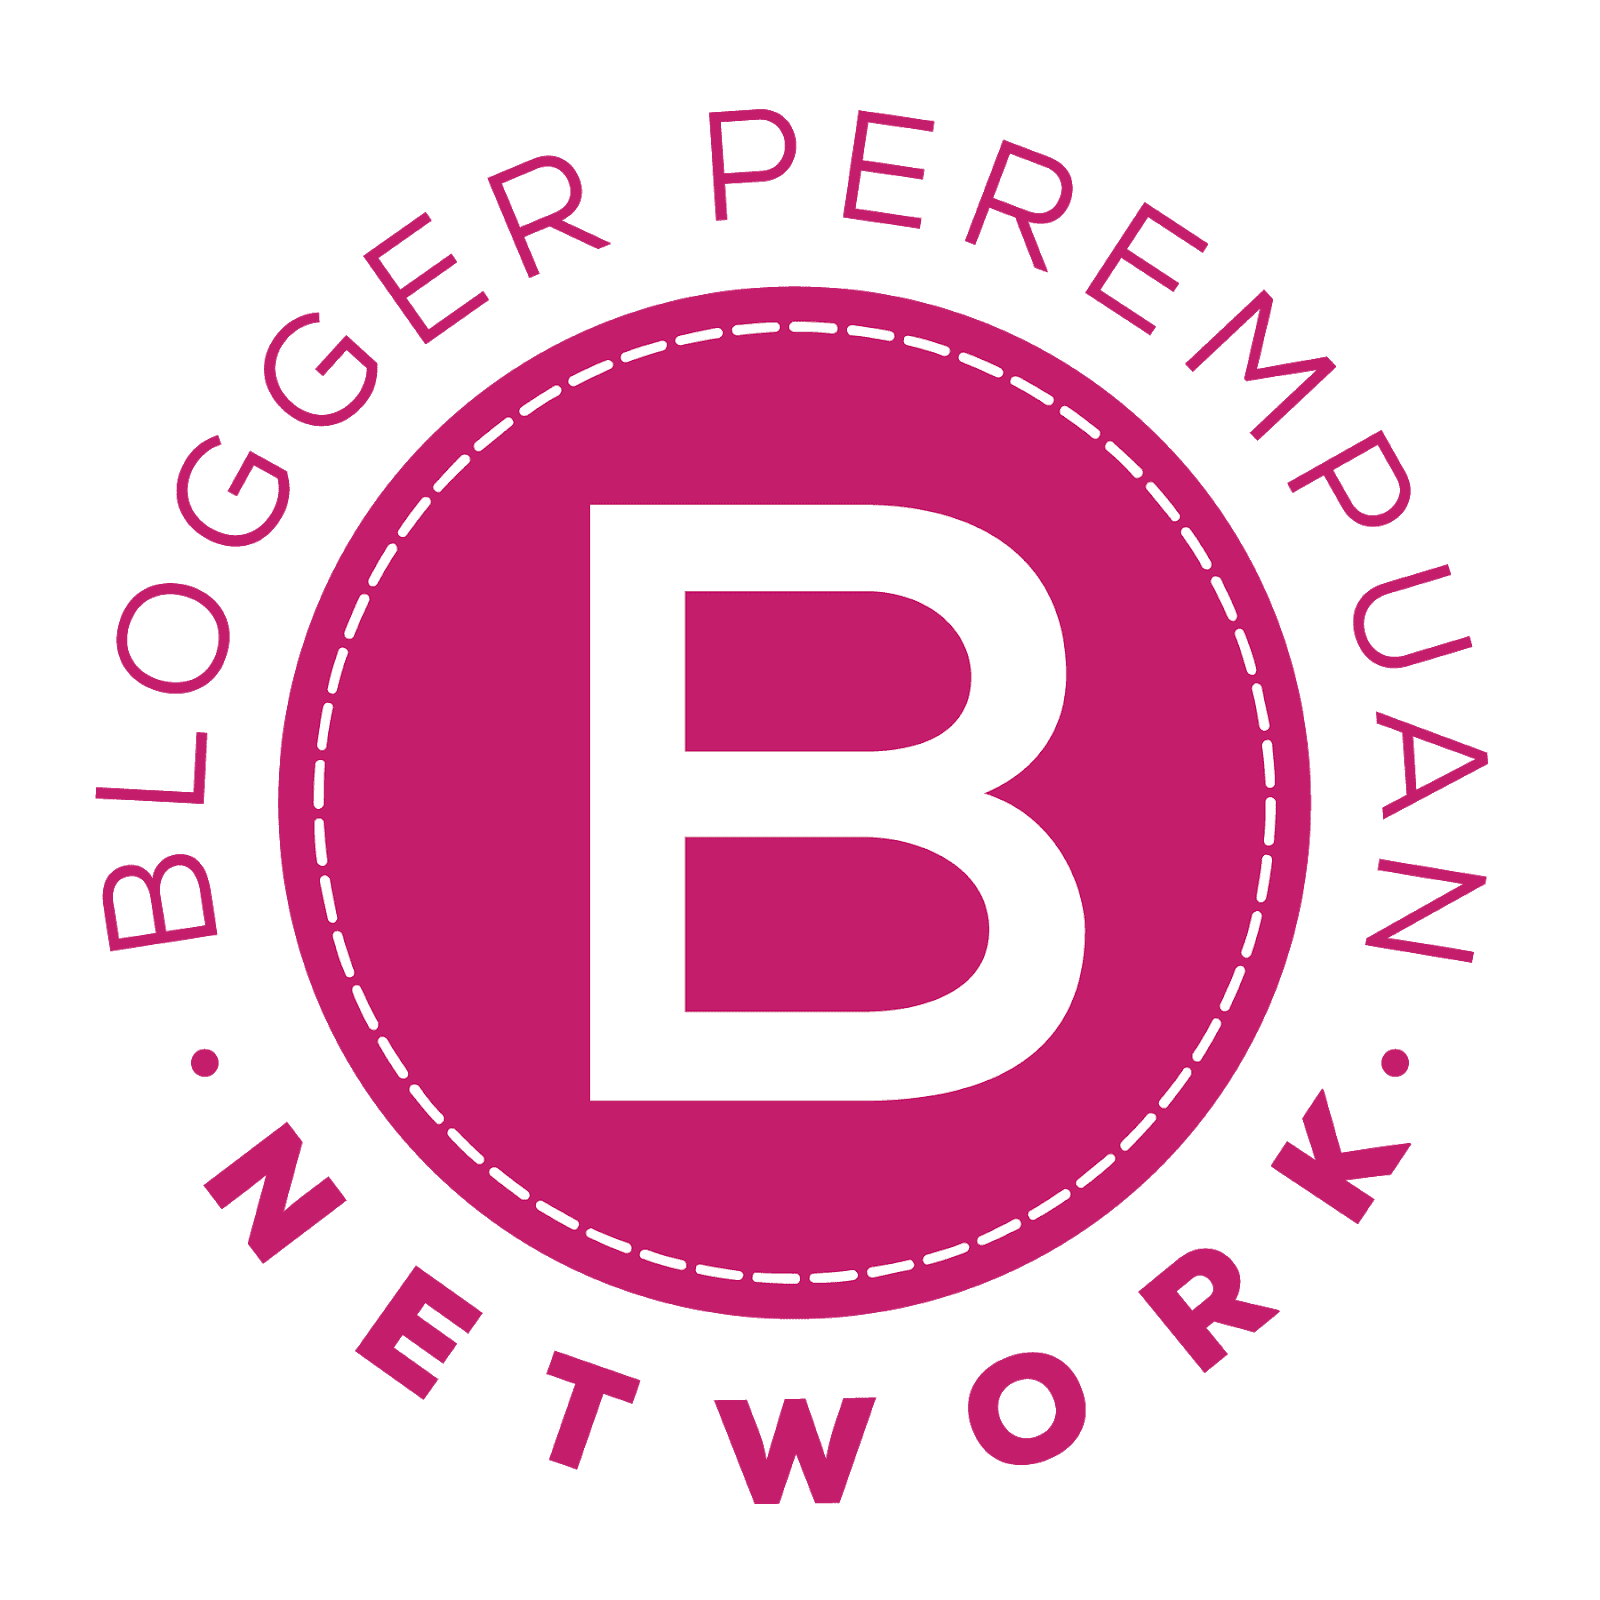 Member of Blogger Perempuan Network